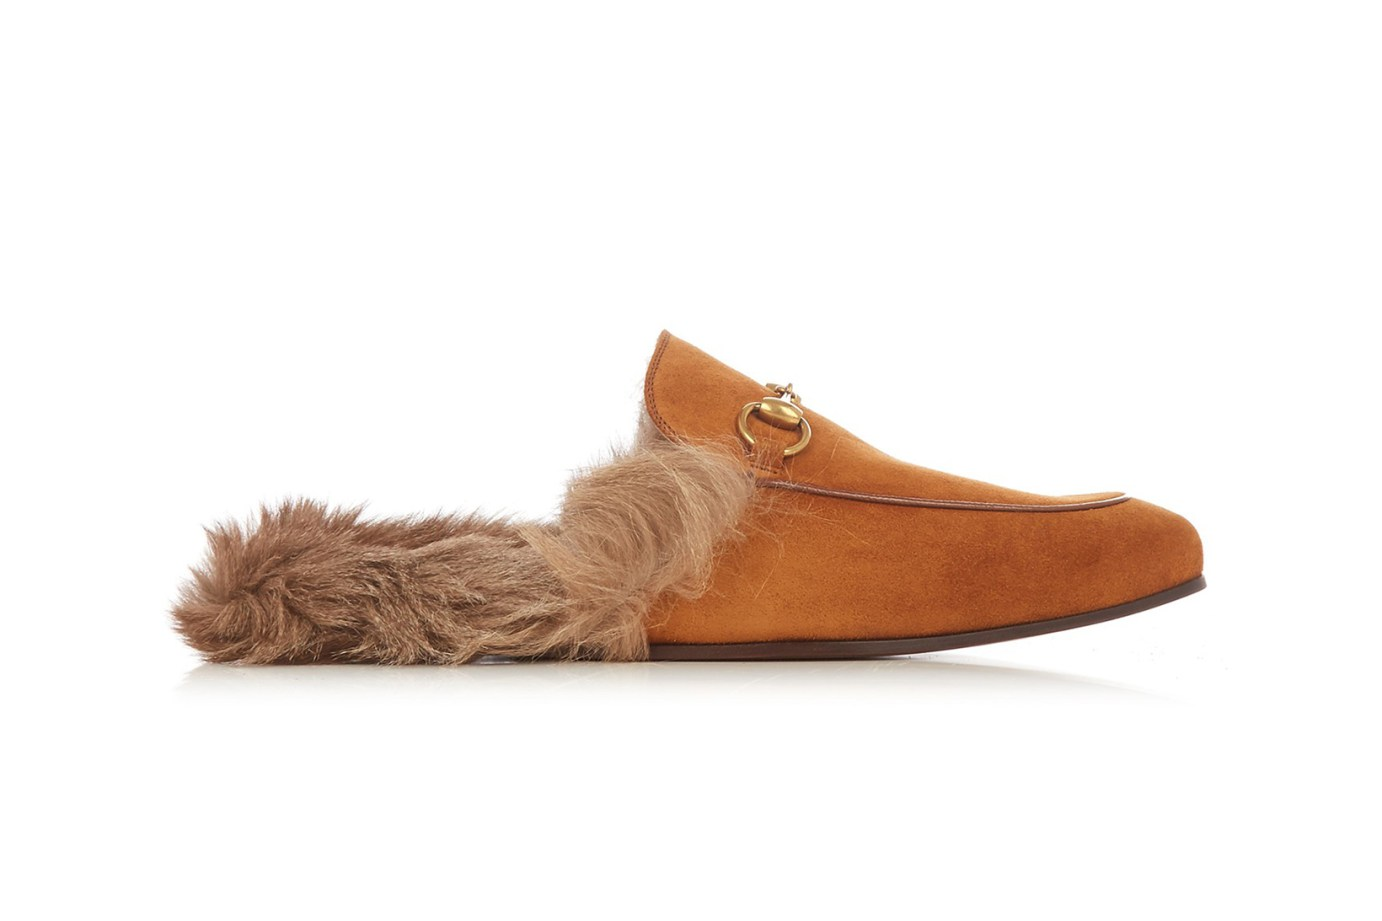 The Gucci Loafers Features Kangaroo Fur